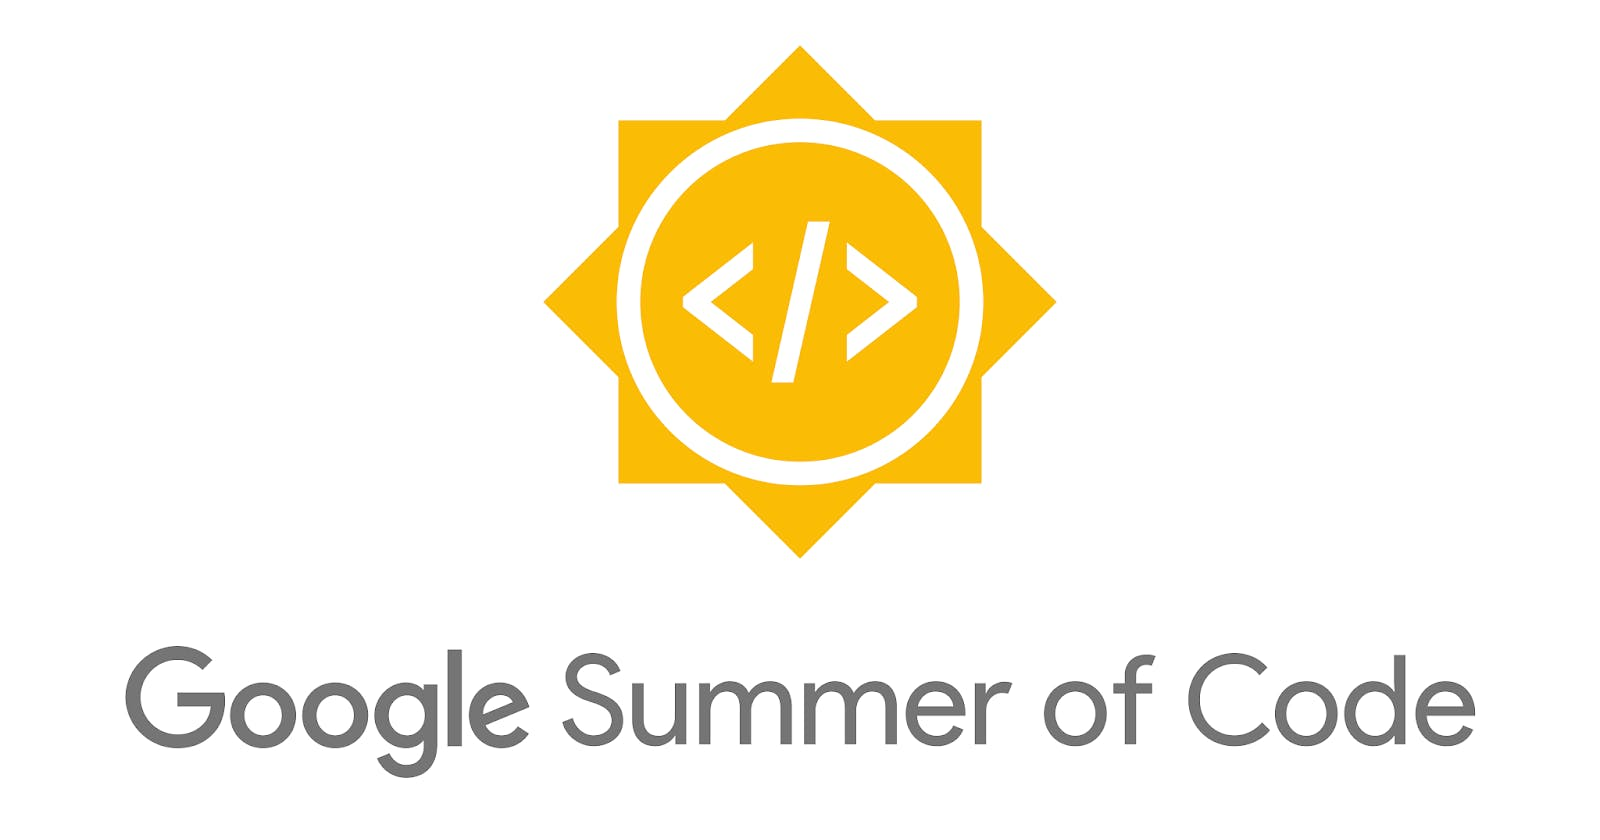 A roadmap on how to prepare for GSoC